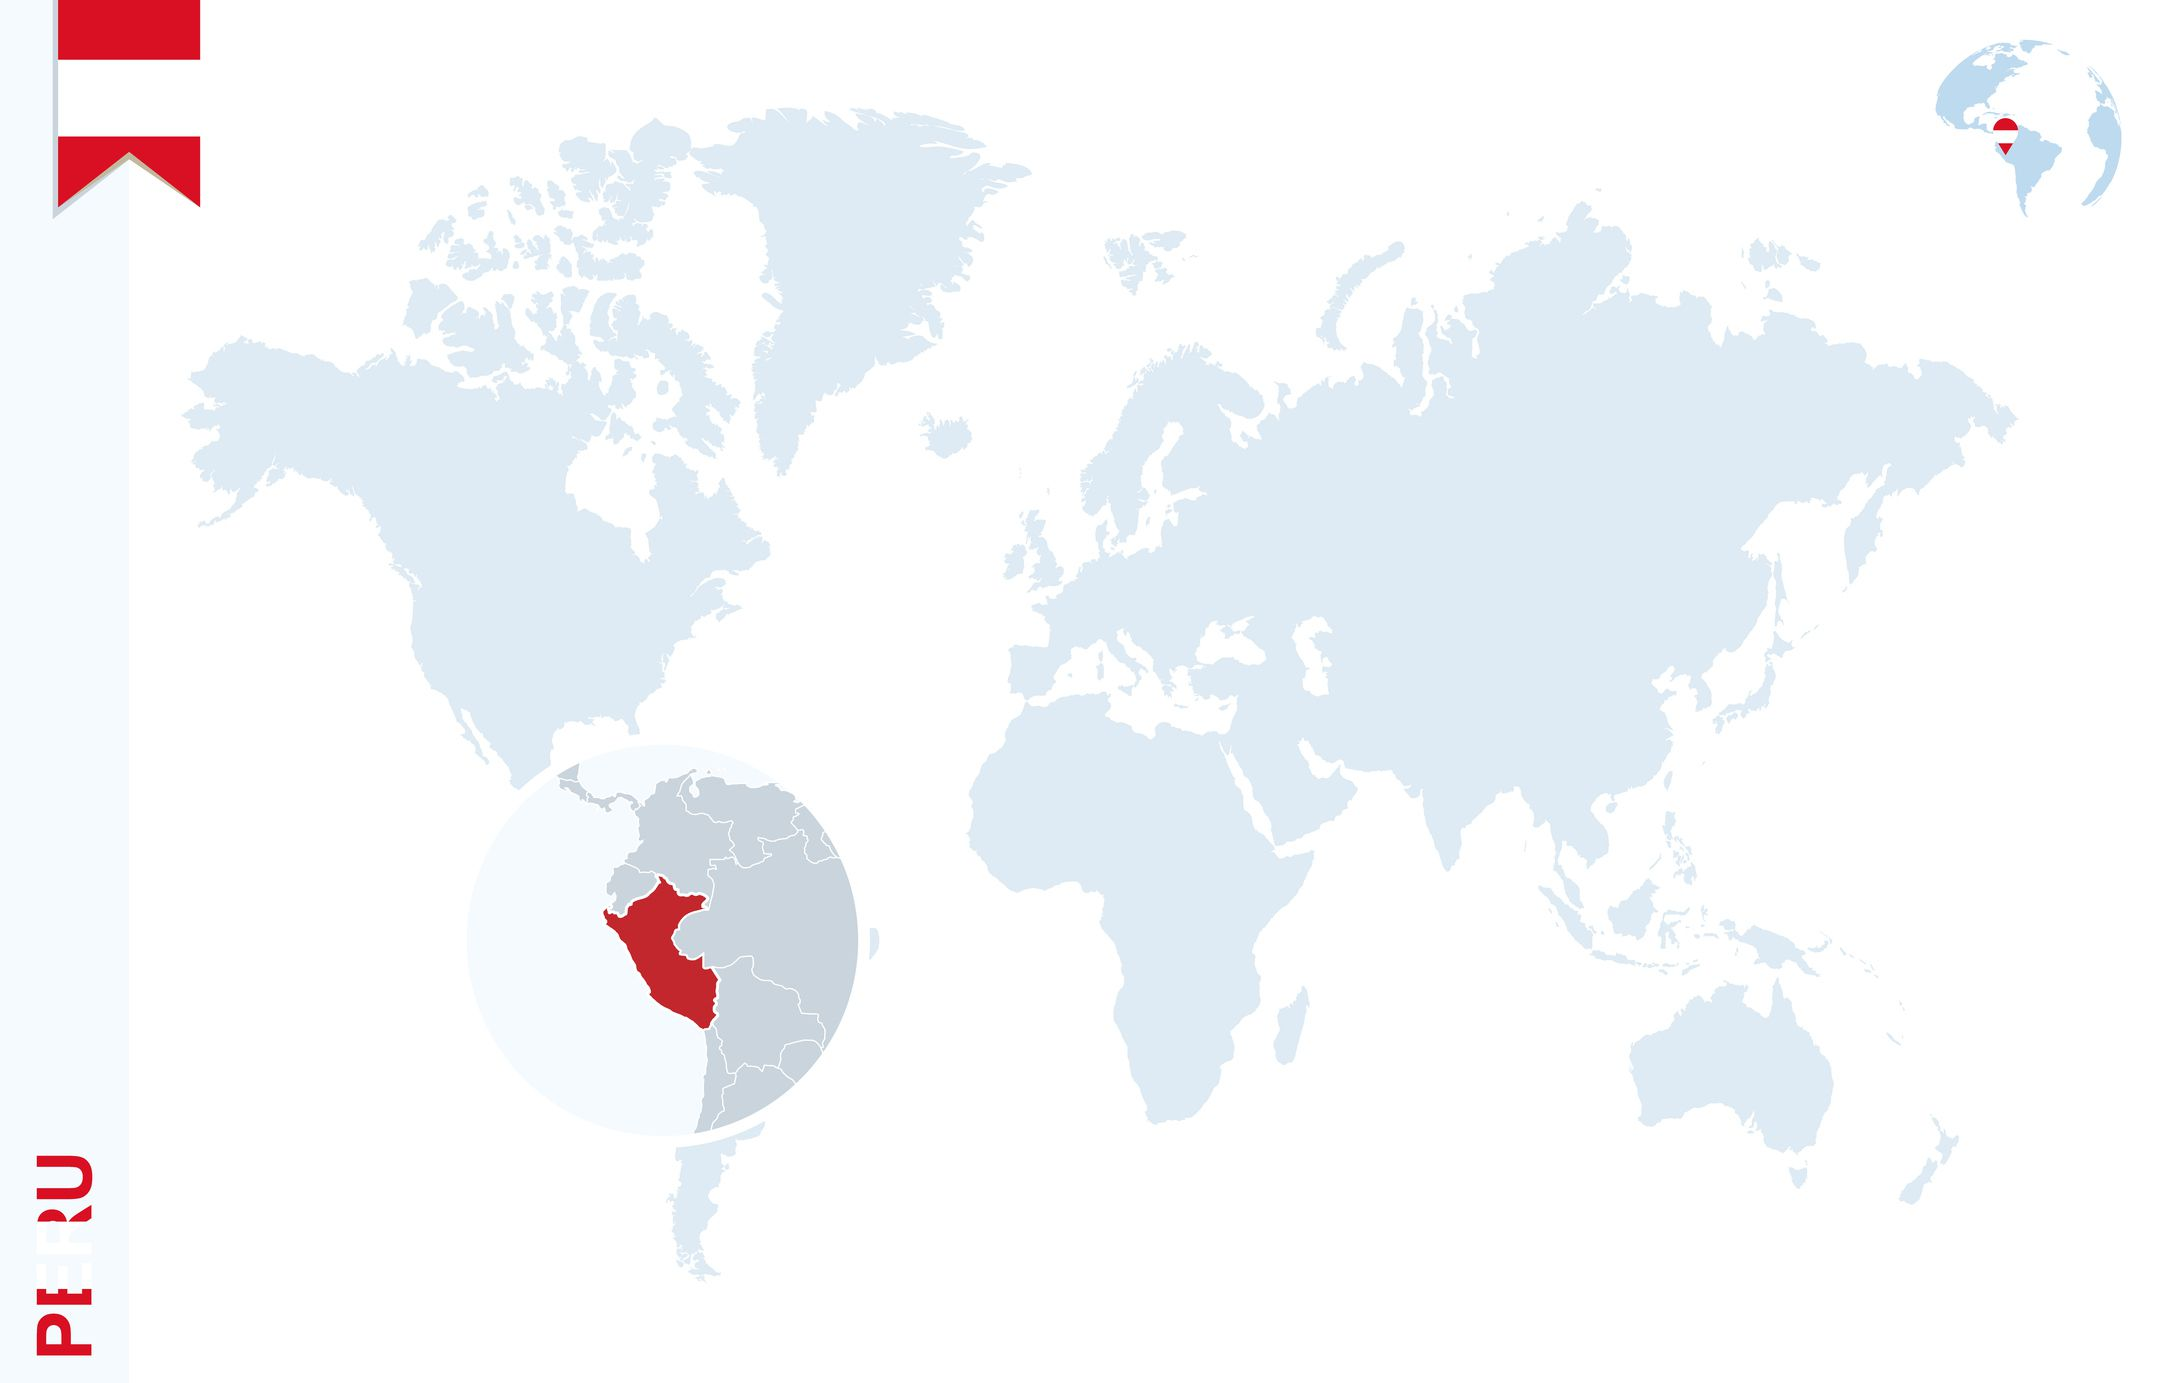 Location of Peru on a Global Map